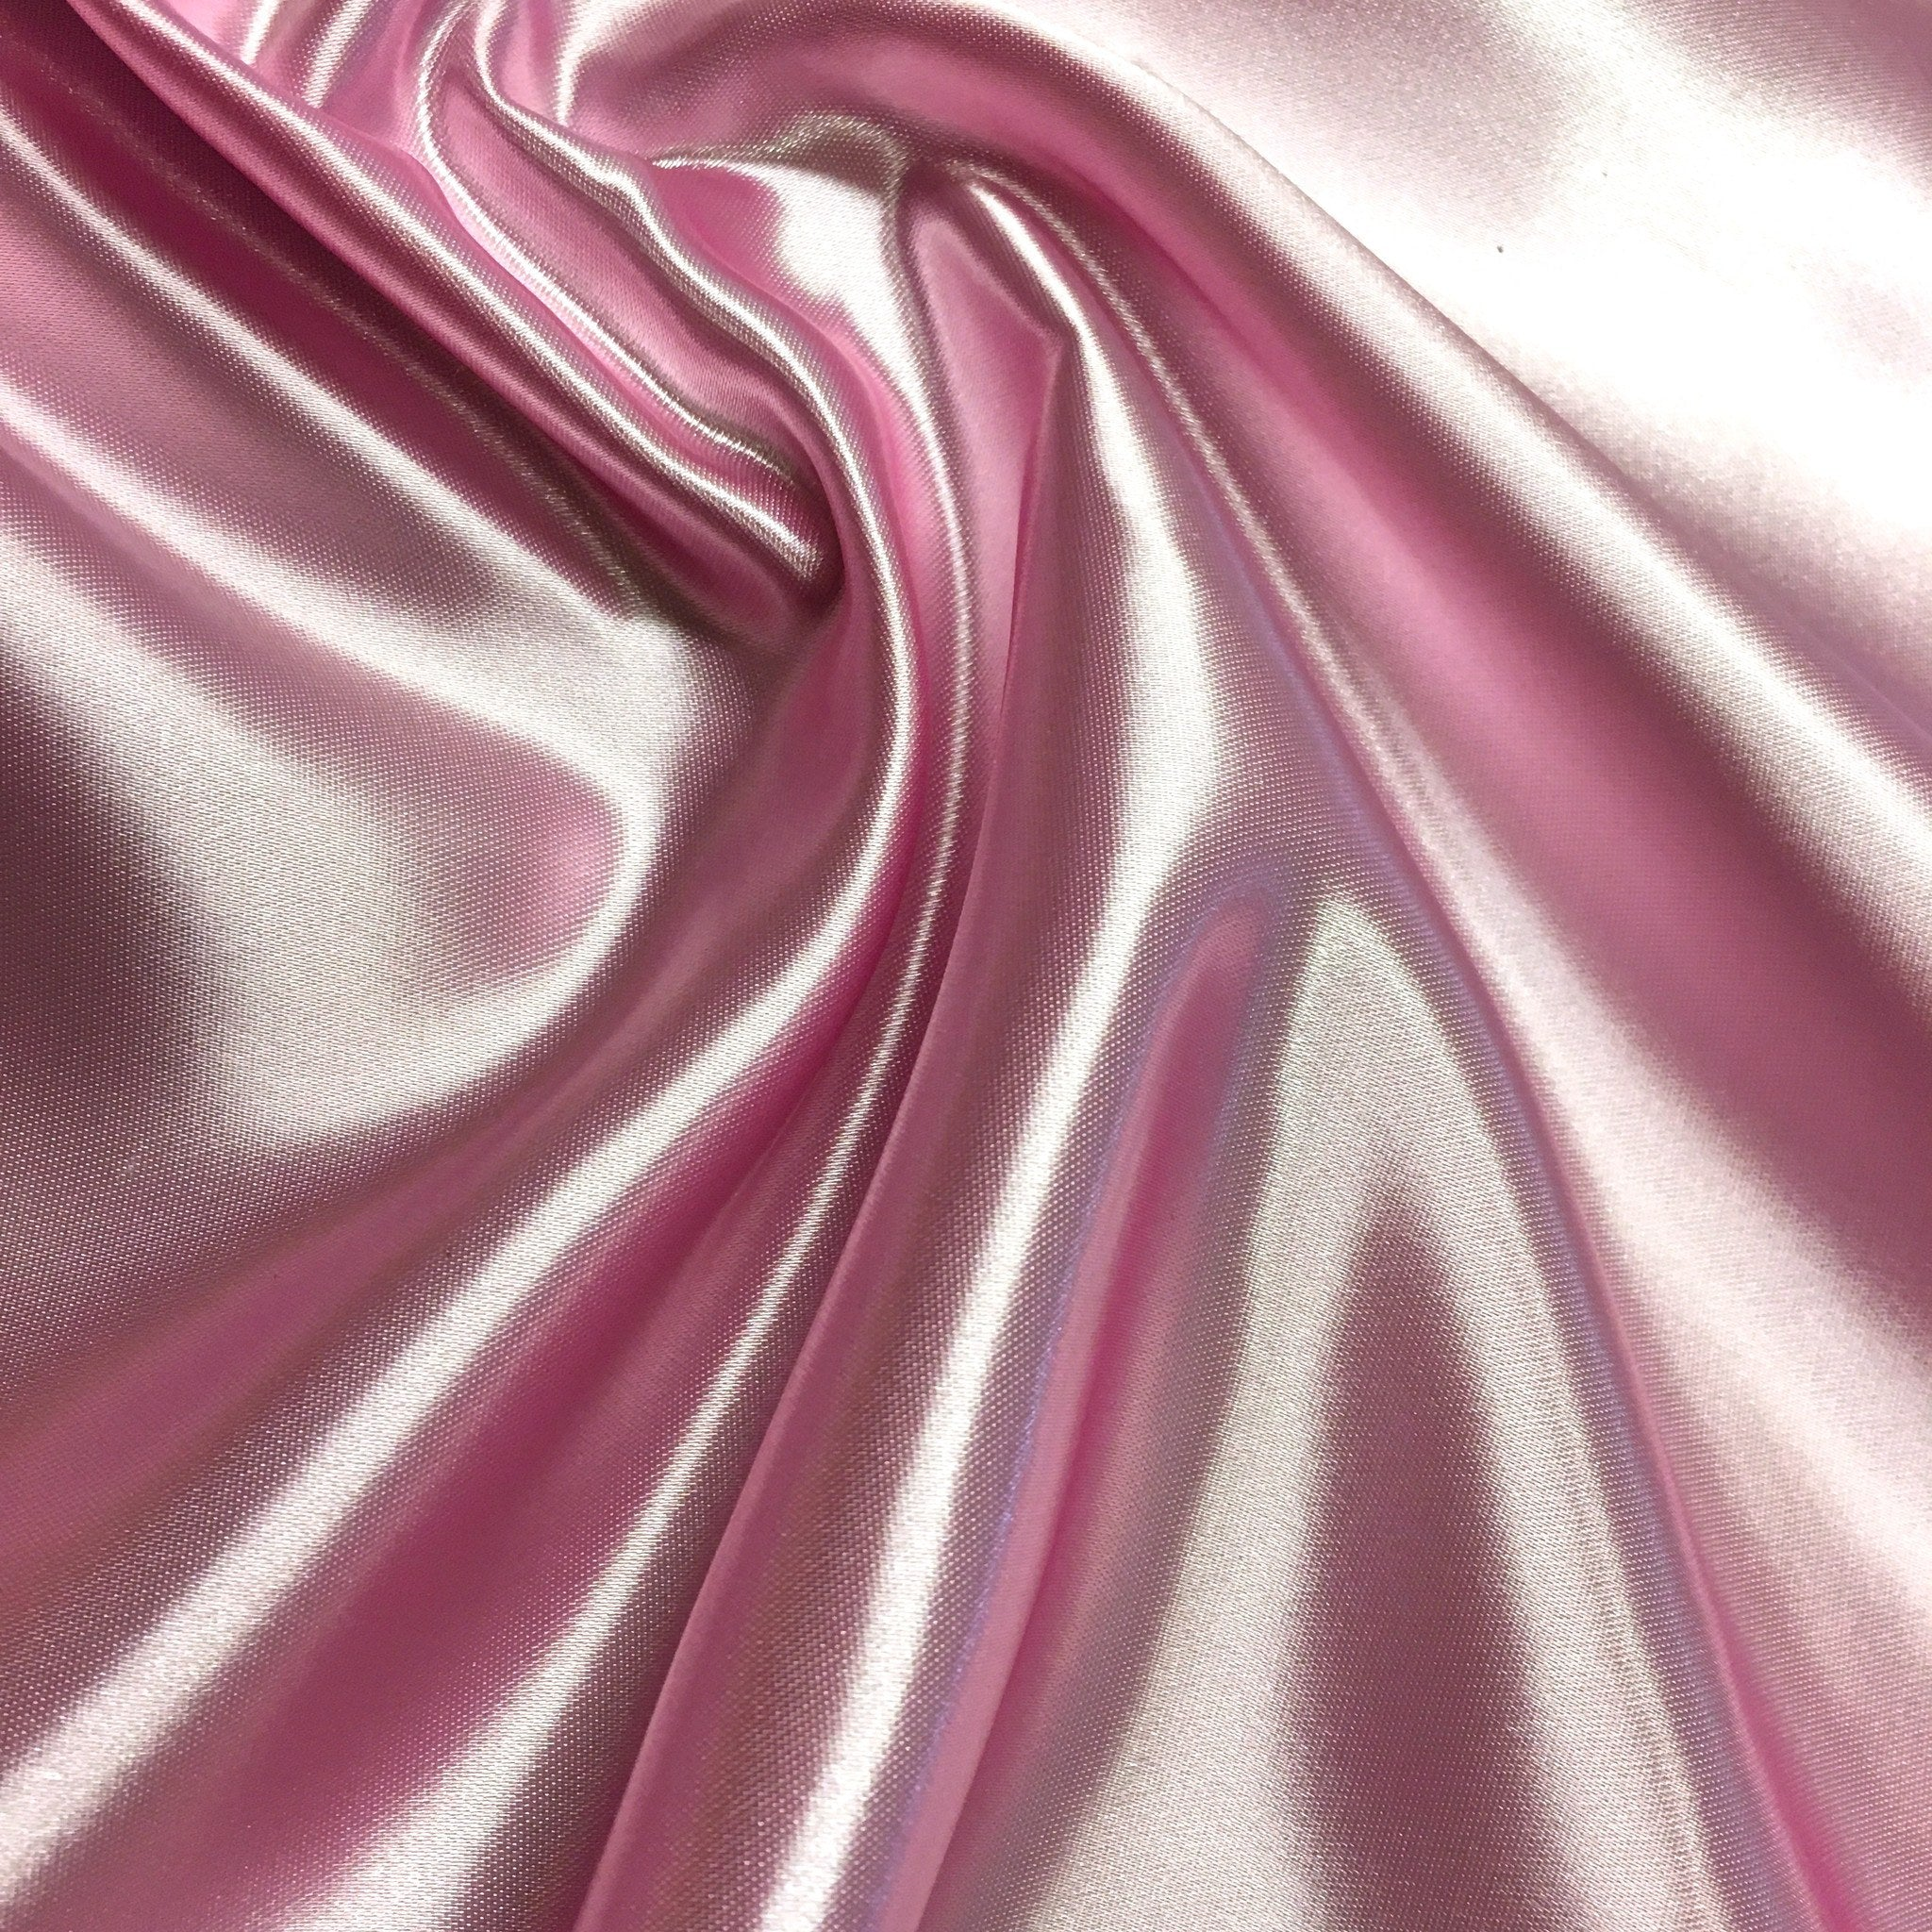 "Free And For Sale >> Bridal Satin Fabric 60"" Wide 100% Polyester $2.99/yard Sold BTY - Fabric Wholesale Direct"